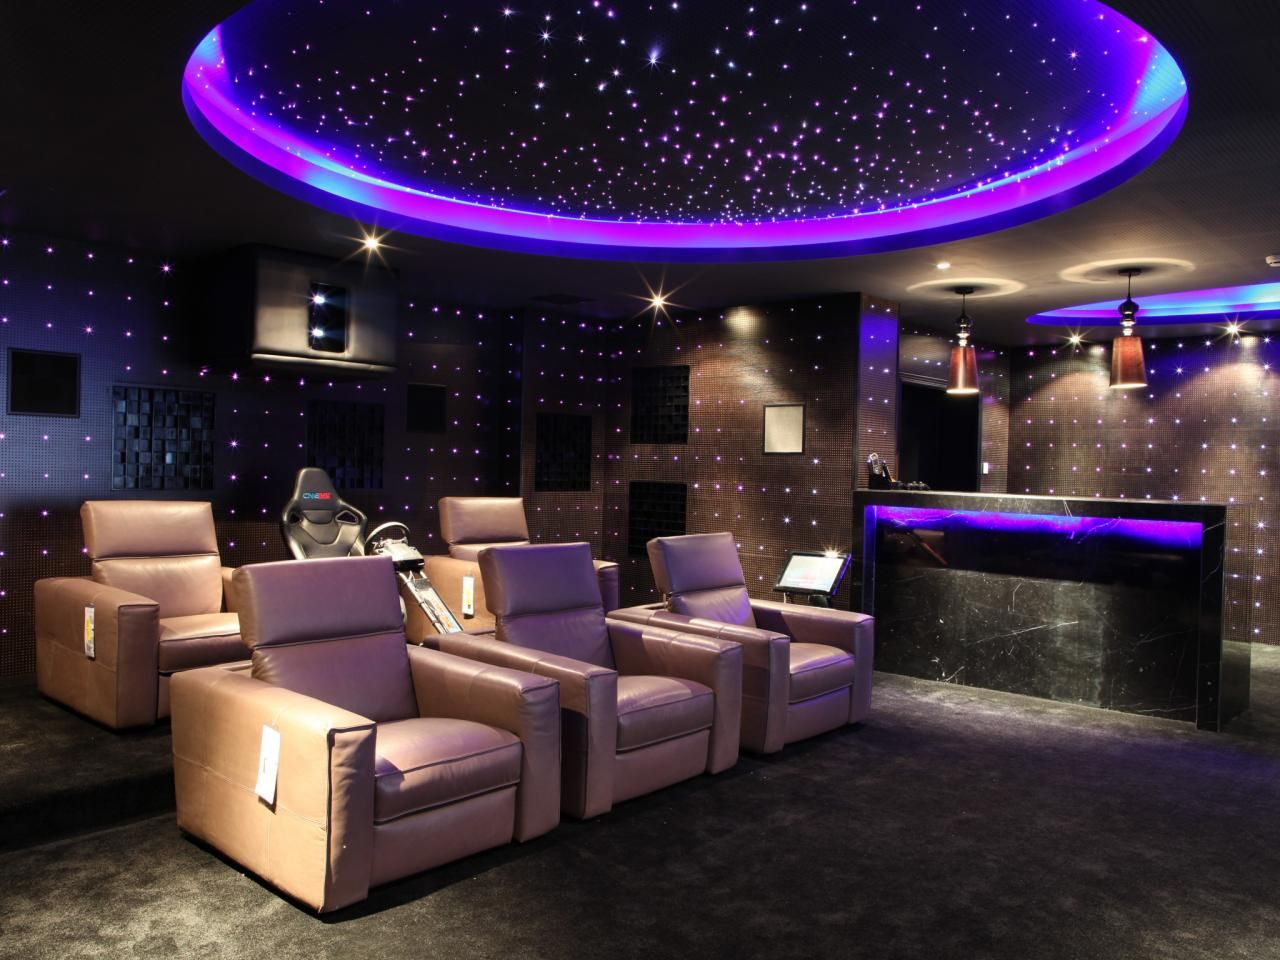 get inspiration from these home theater design ideas and prepare to install a custom entertainment